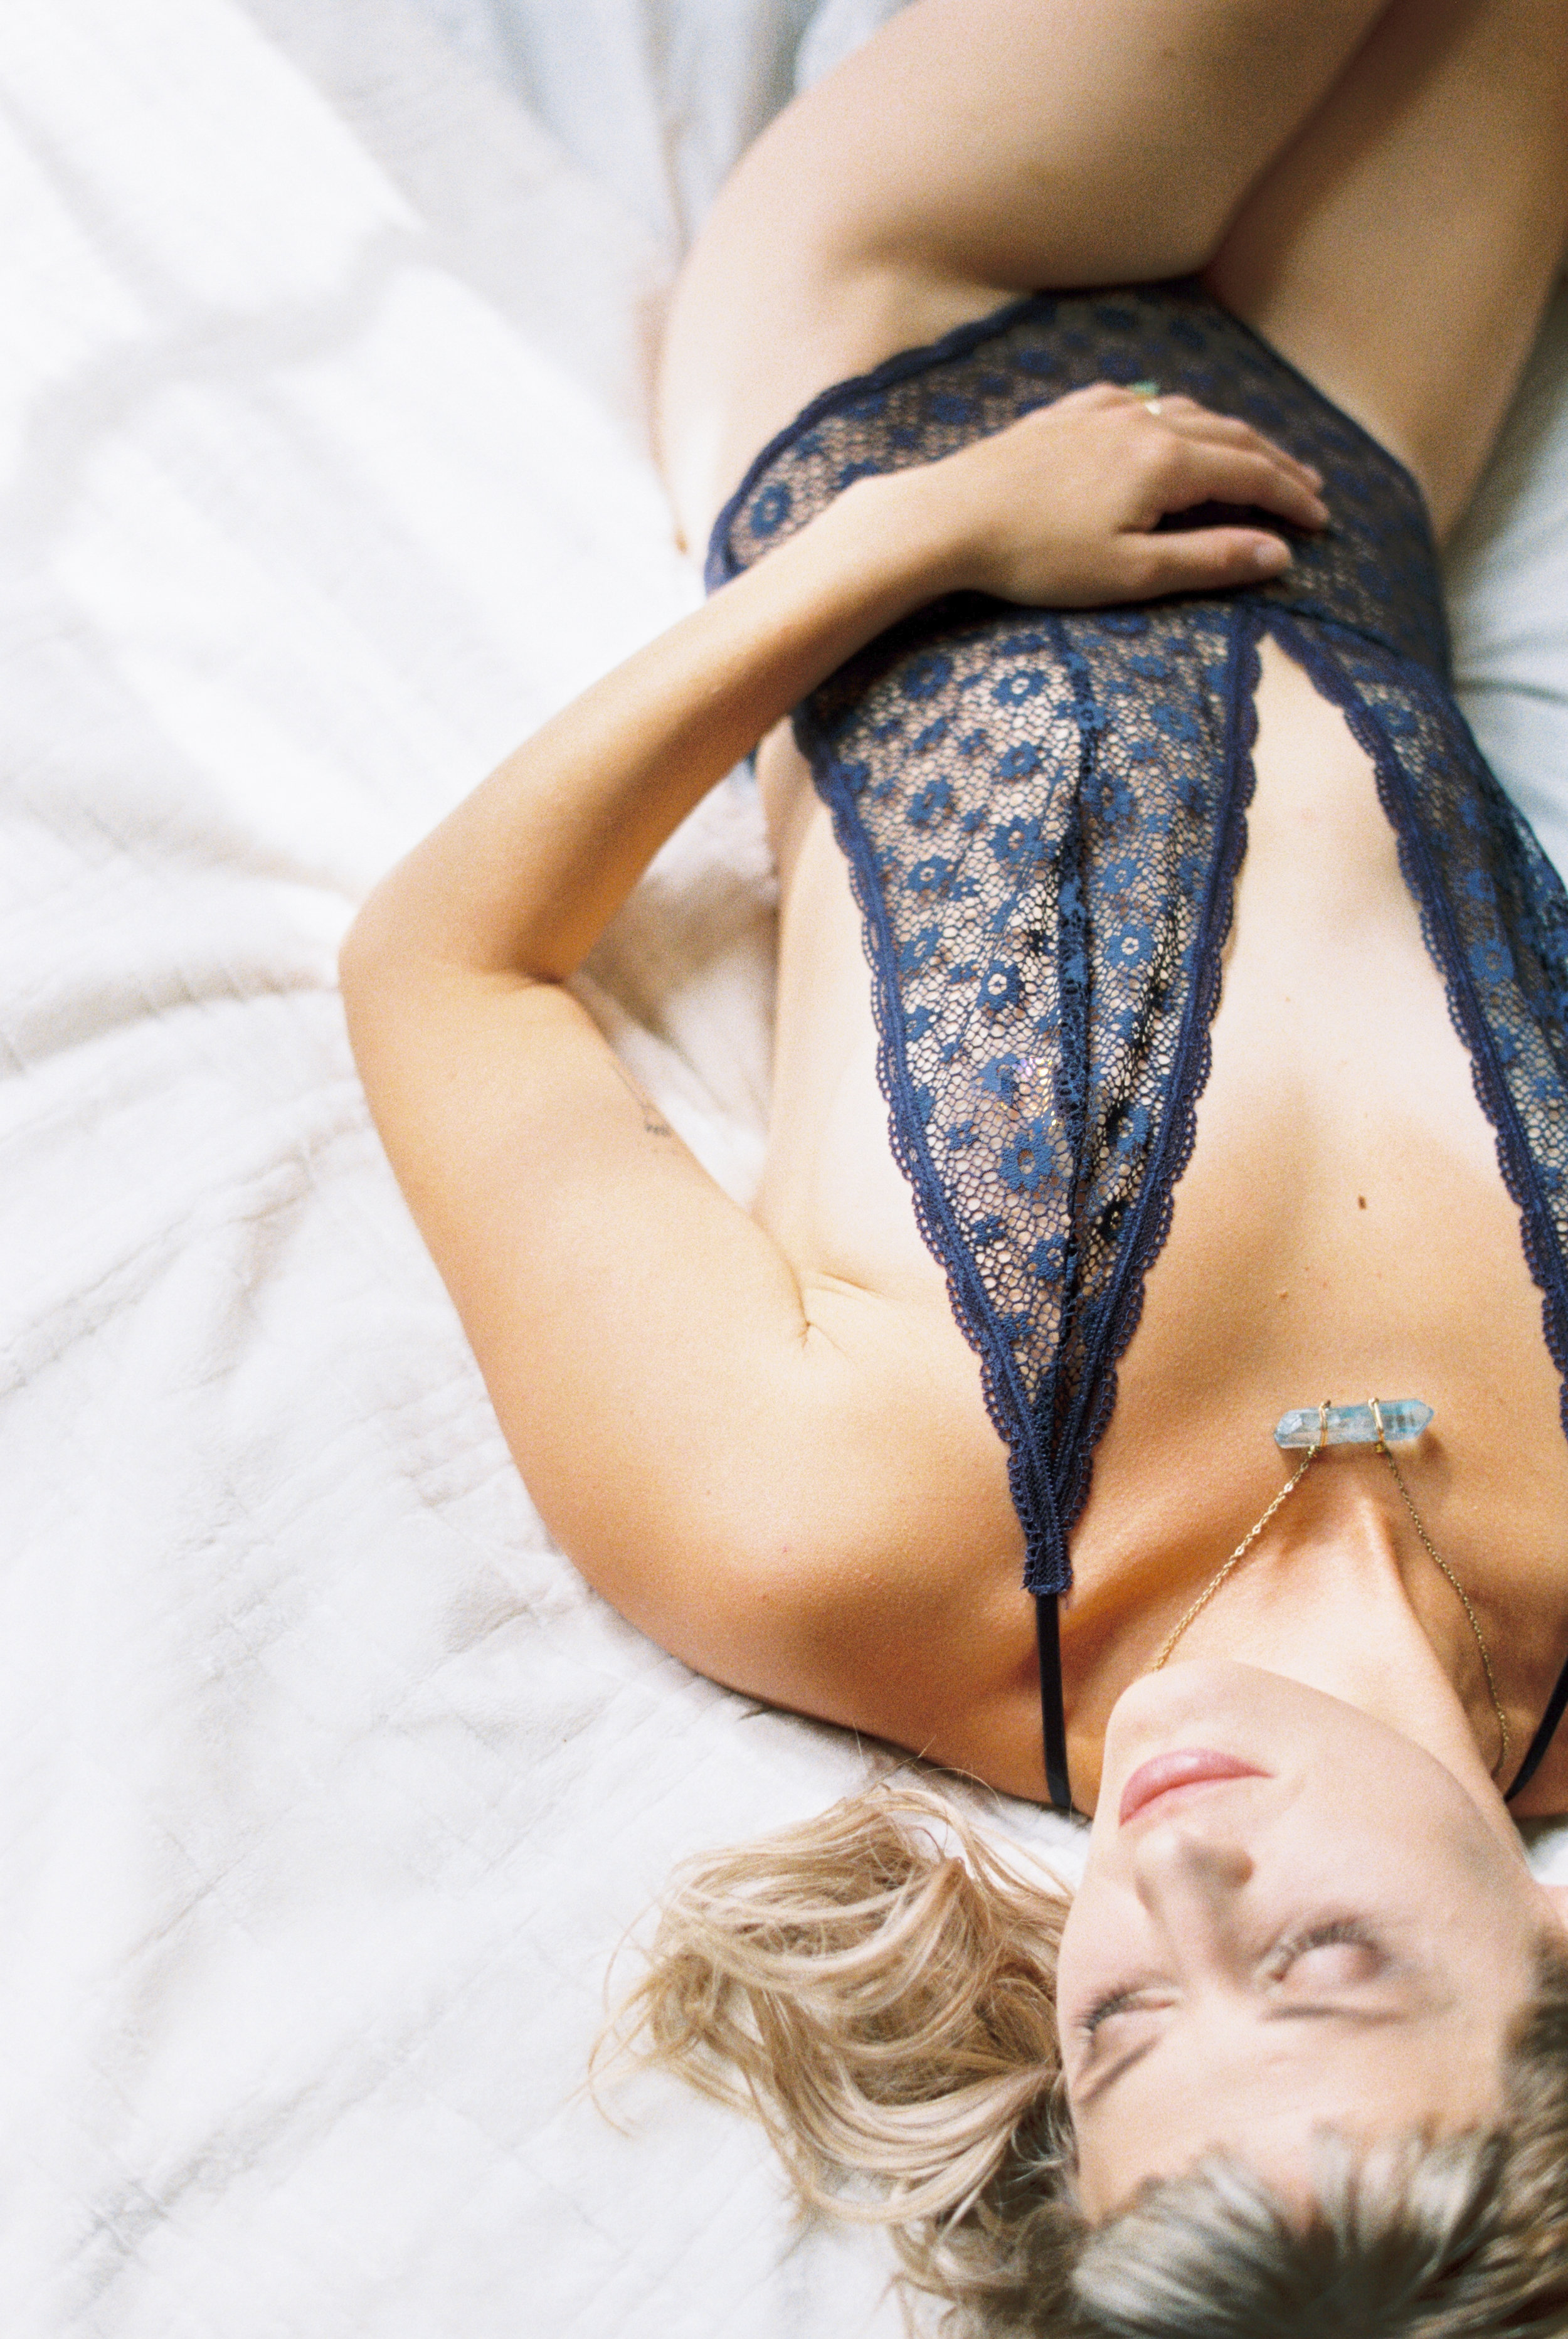 Film_Dayton_Boudoir_Photographer_Tonya_Espy_Photography-6.jpg